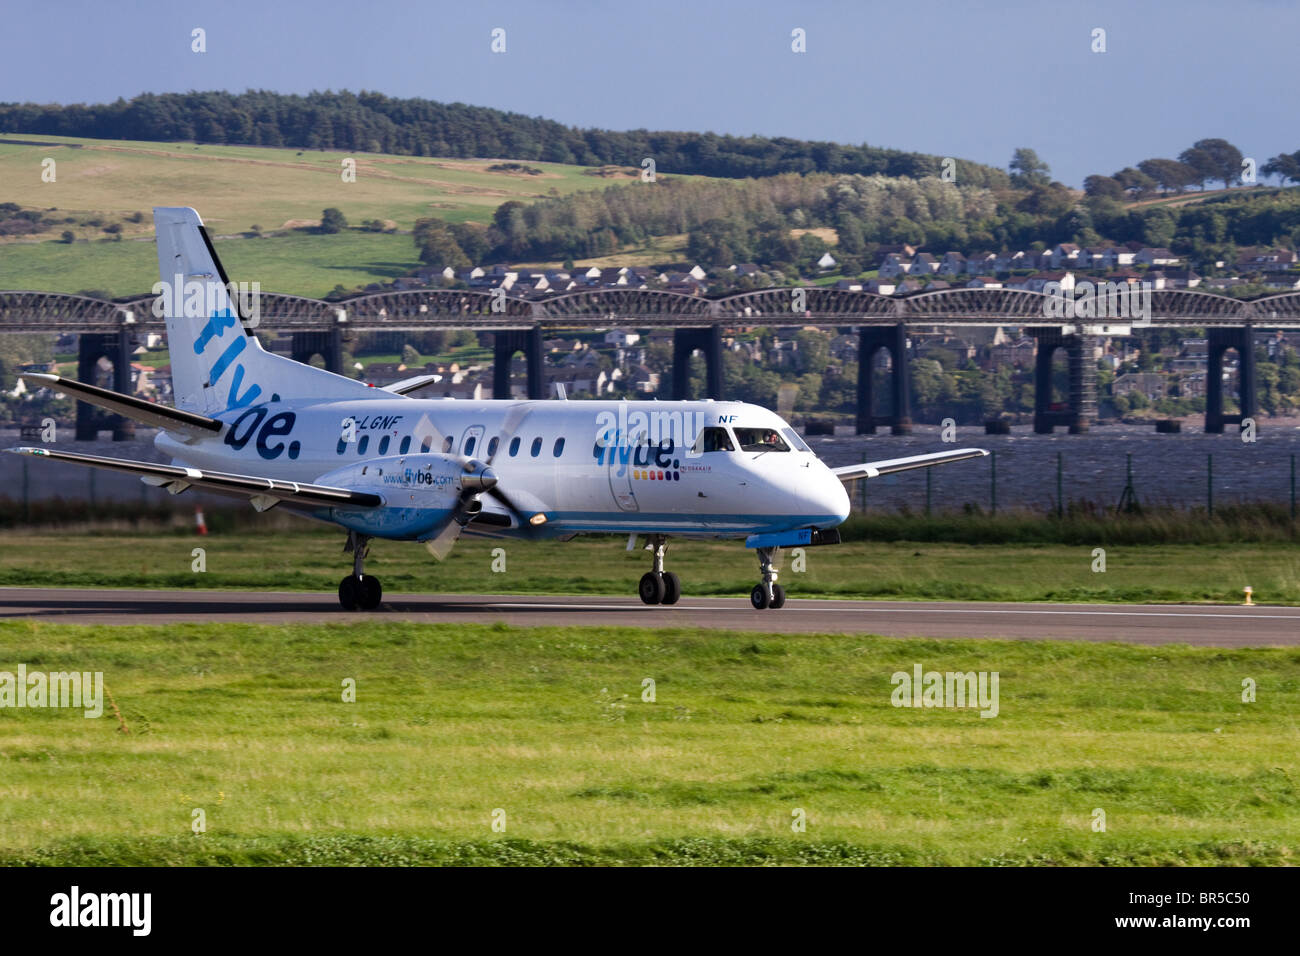 Logan Air G-LGNF_ FlyBe aircraft taking Off from Dundee Airport, Tayside, Scotland, UK - Stock Image